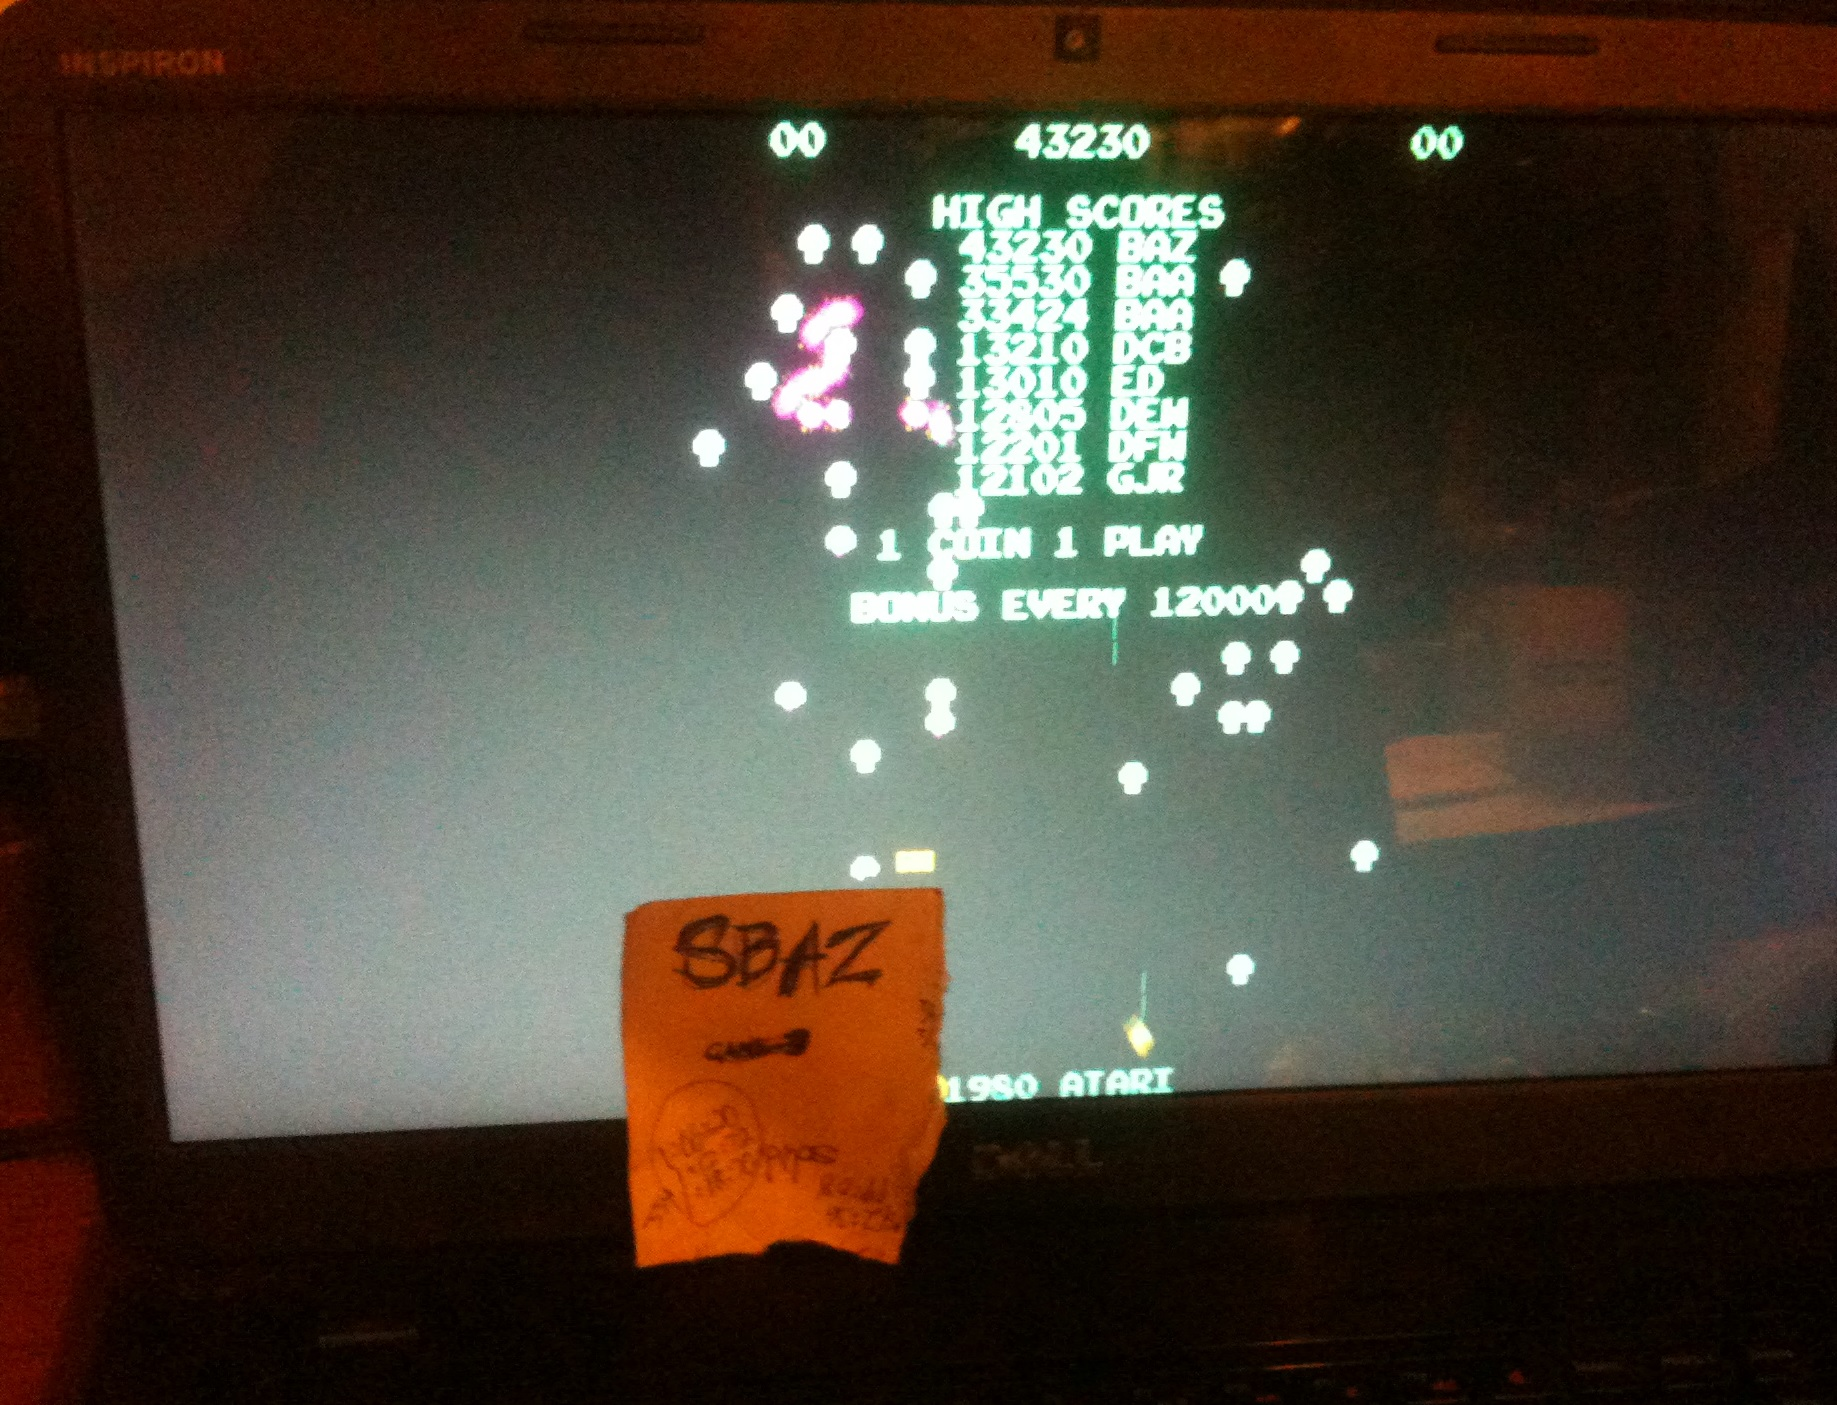 Centipede 43,230 points